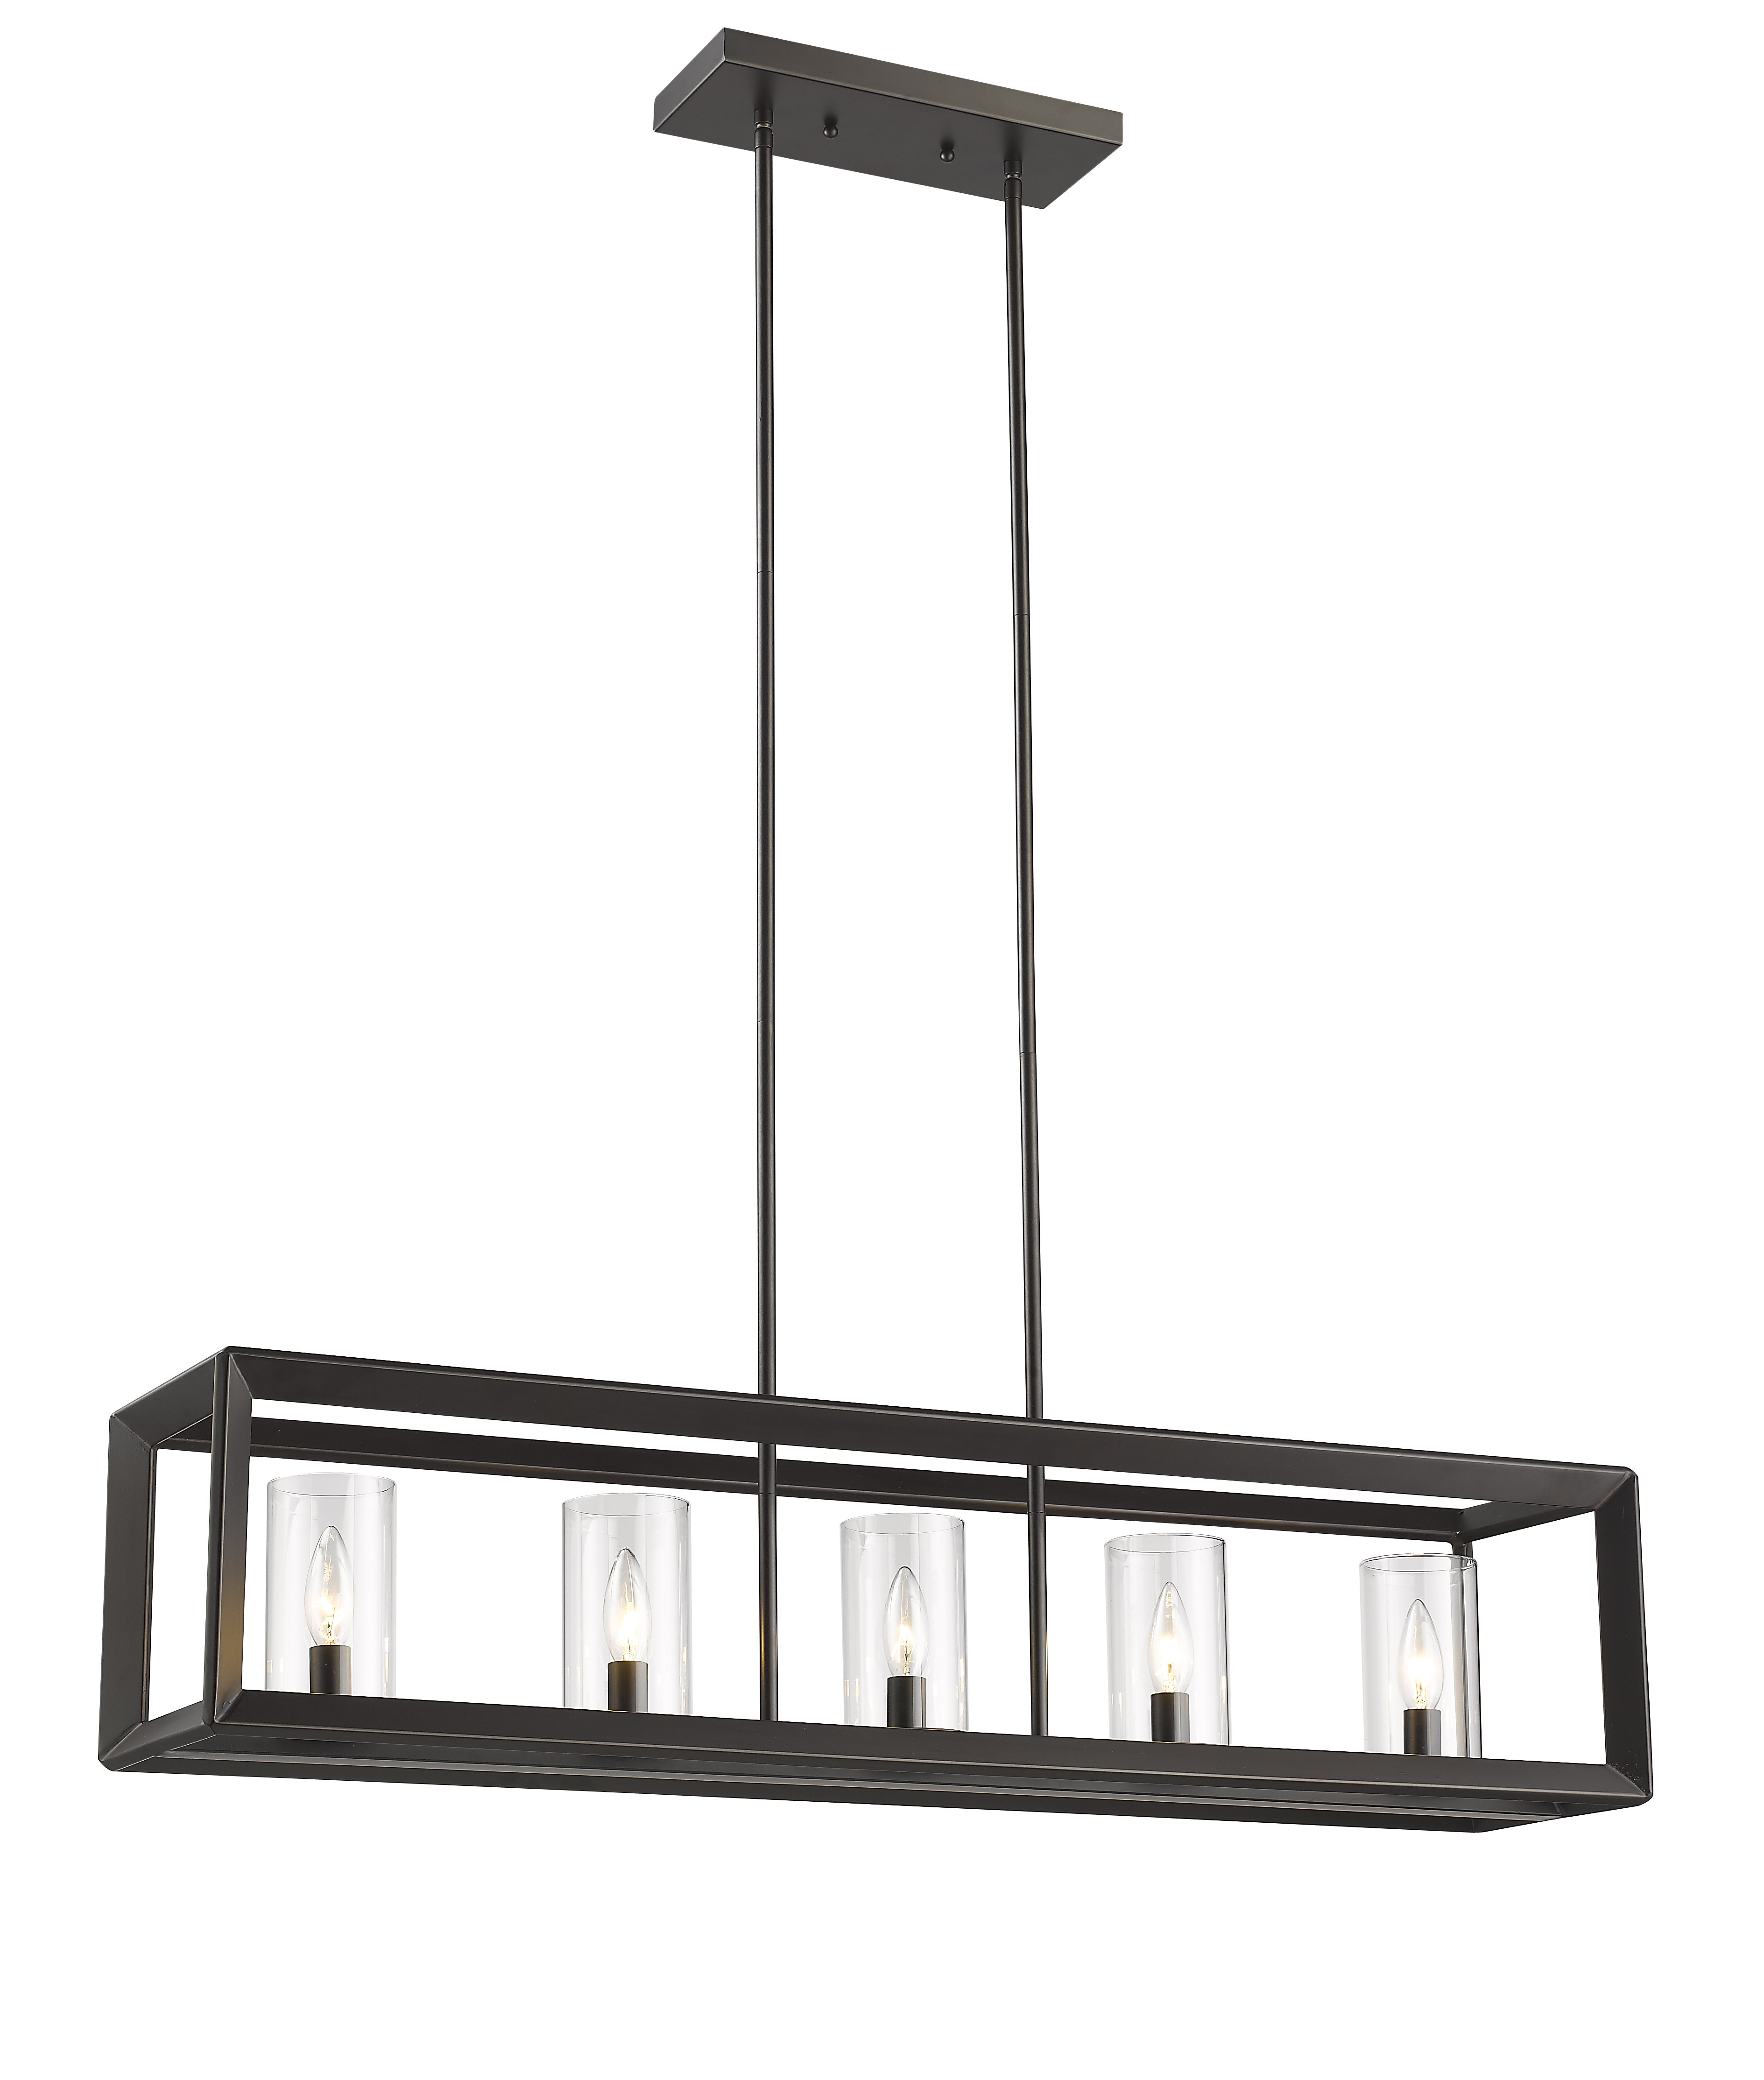 Delon 5 Light Kitchen Island Linear Pendants Within Most Up To Date Farmhouse / Country Kitchen Island Pendants (Gallery 17 of 20)